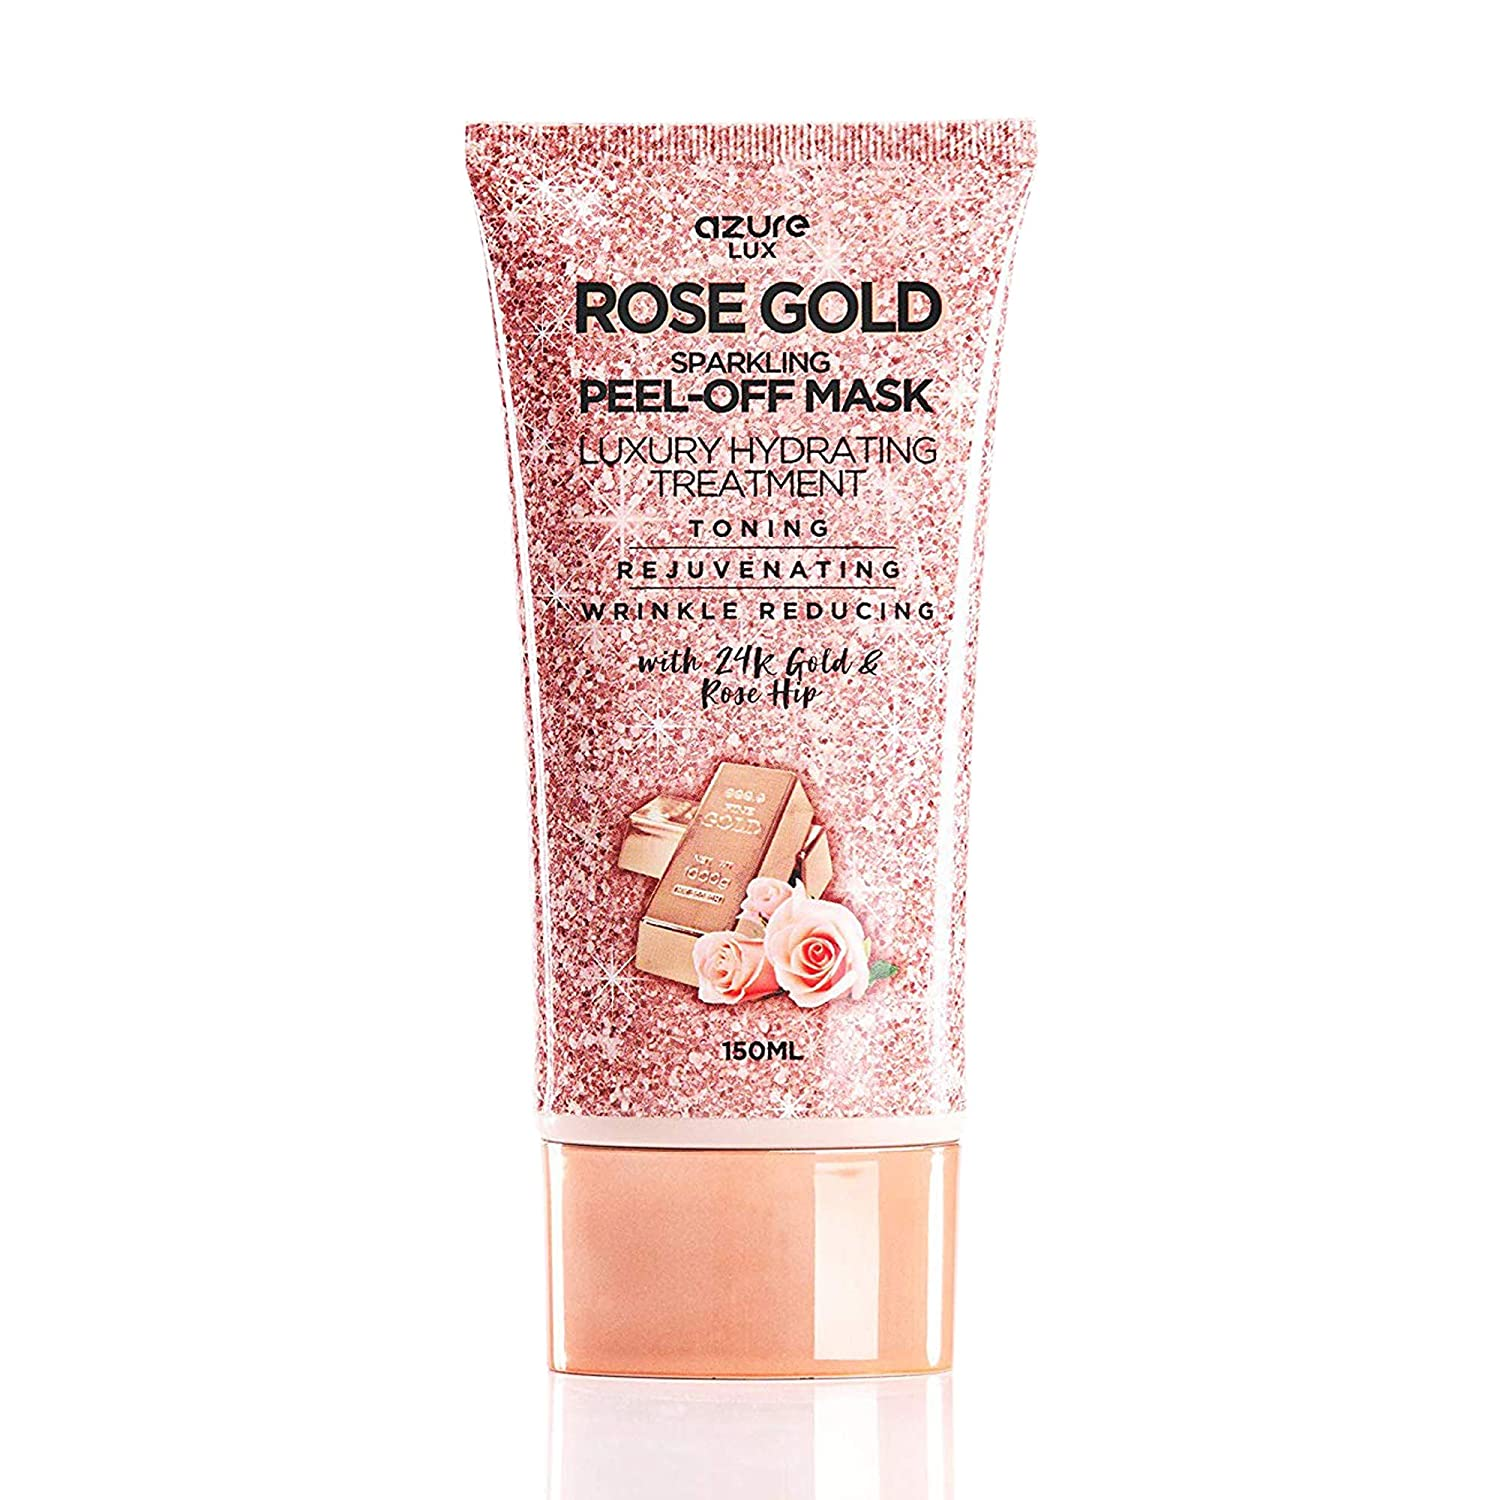 AZURE Rose Gold Luxury Sparkling Hydrating Peel Off Face Mask – Anti Aging, Toning & Rejuvenating | Removes Blackheads, Dirt & Oils | Reduces Wrinkles, Fine Lines & Acne Scars | Made in Korea - 150mL